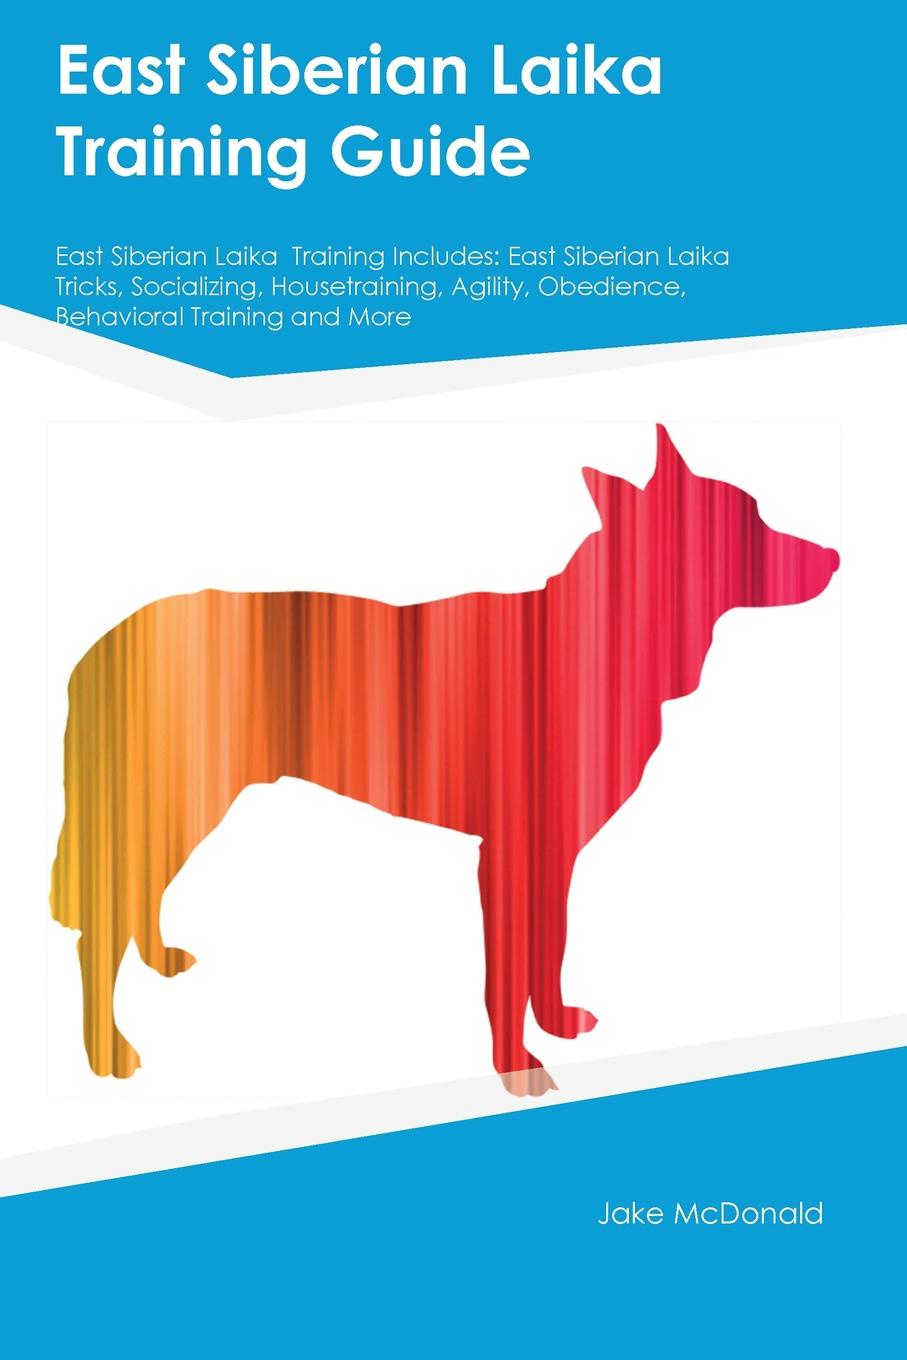 Peter Paige East Siberian Laika Training Guide East Siberian Laika Training Includes. East Siberian Laika Tricks, Socializing, Housetraining, Agility, Obedience, Behavioral Training and More guide to the great siberian railway